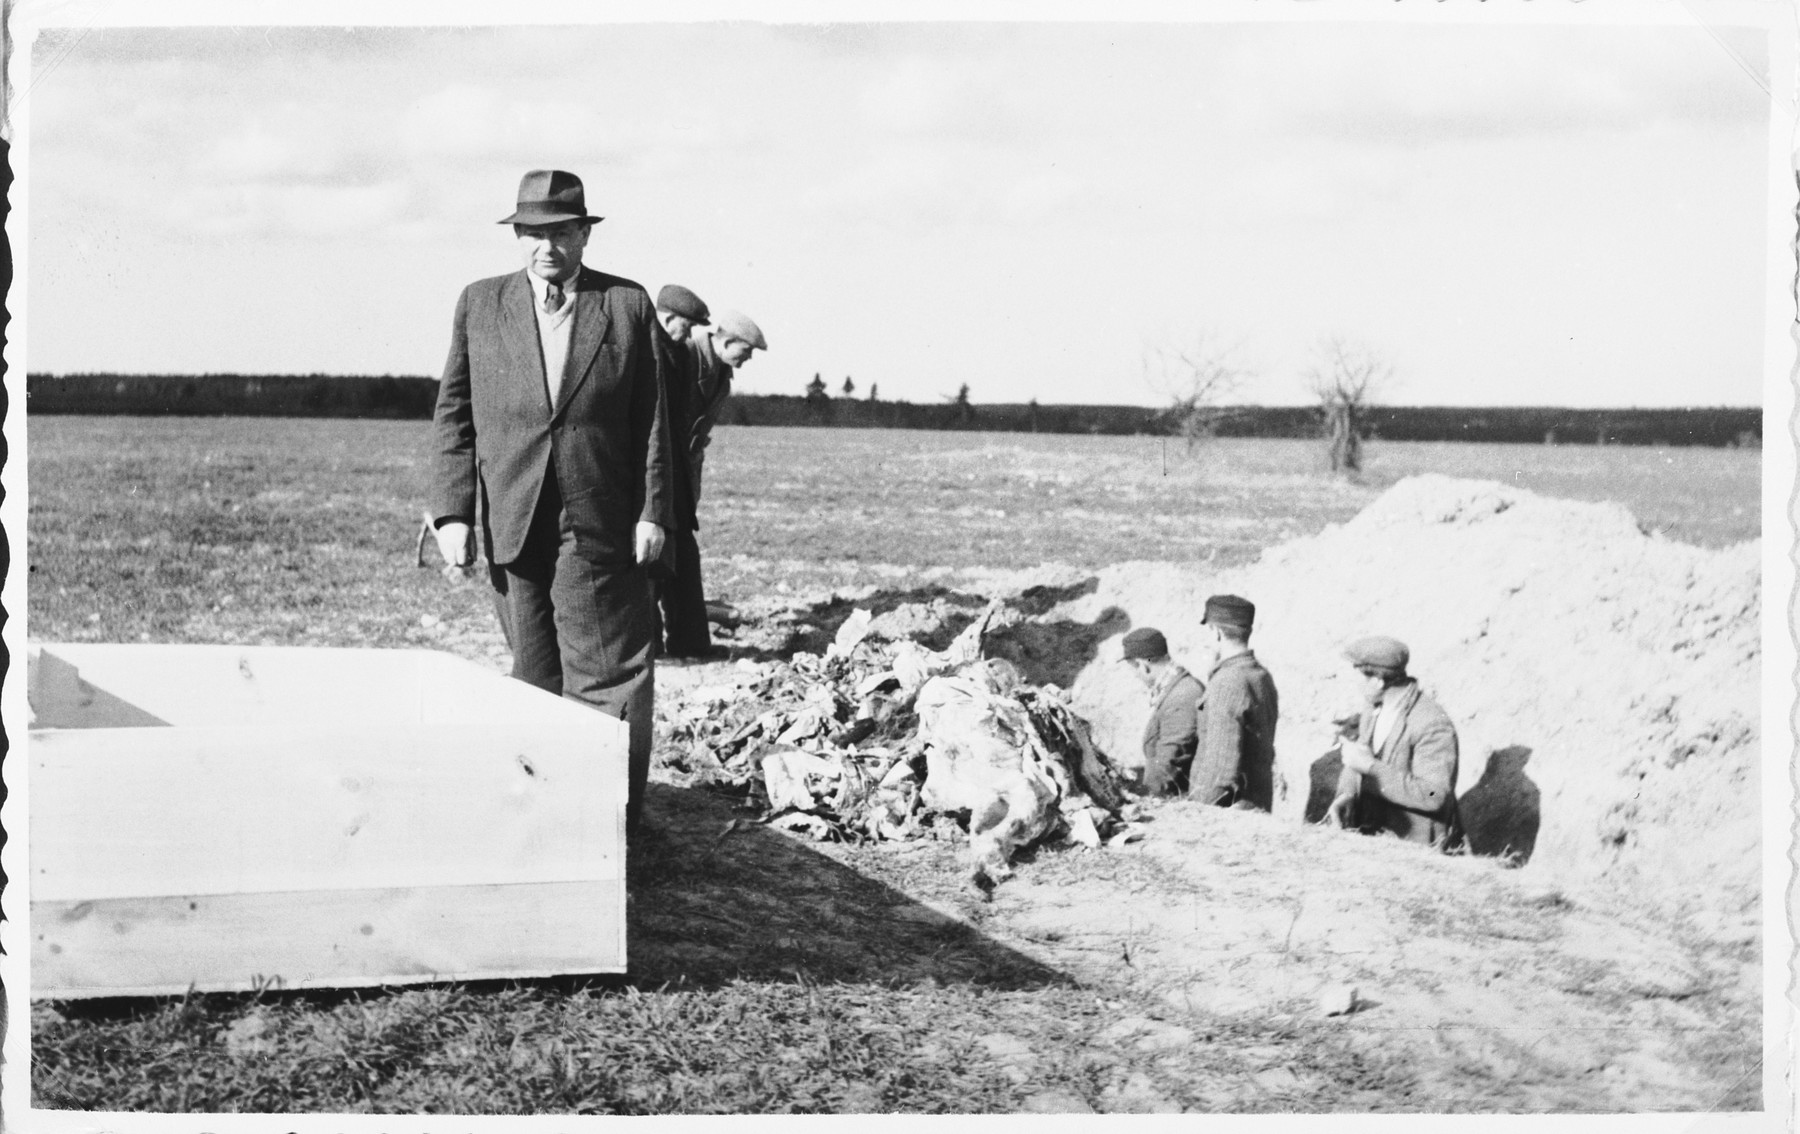 Jewish survivors and Polish workers exhume the bodies of Jews killed during the liquidation of Siemiatycze so that they can be properly reburied at the entrance to the Jewish cemetery.  Yehoshua Kejles is standing at the front.  His father, Efraim Kejles, was among those murdered.